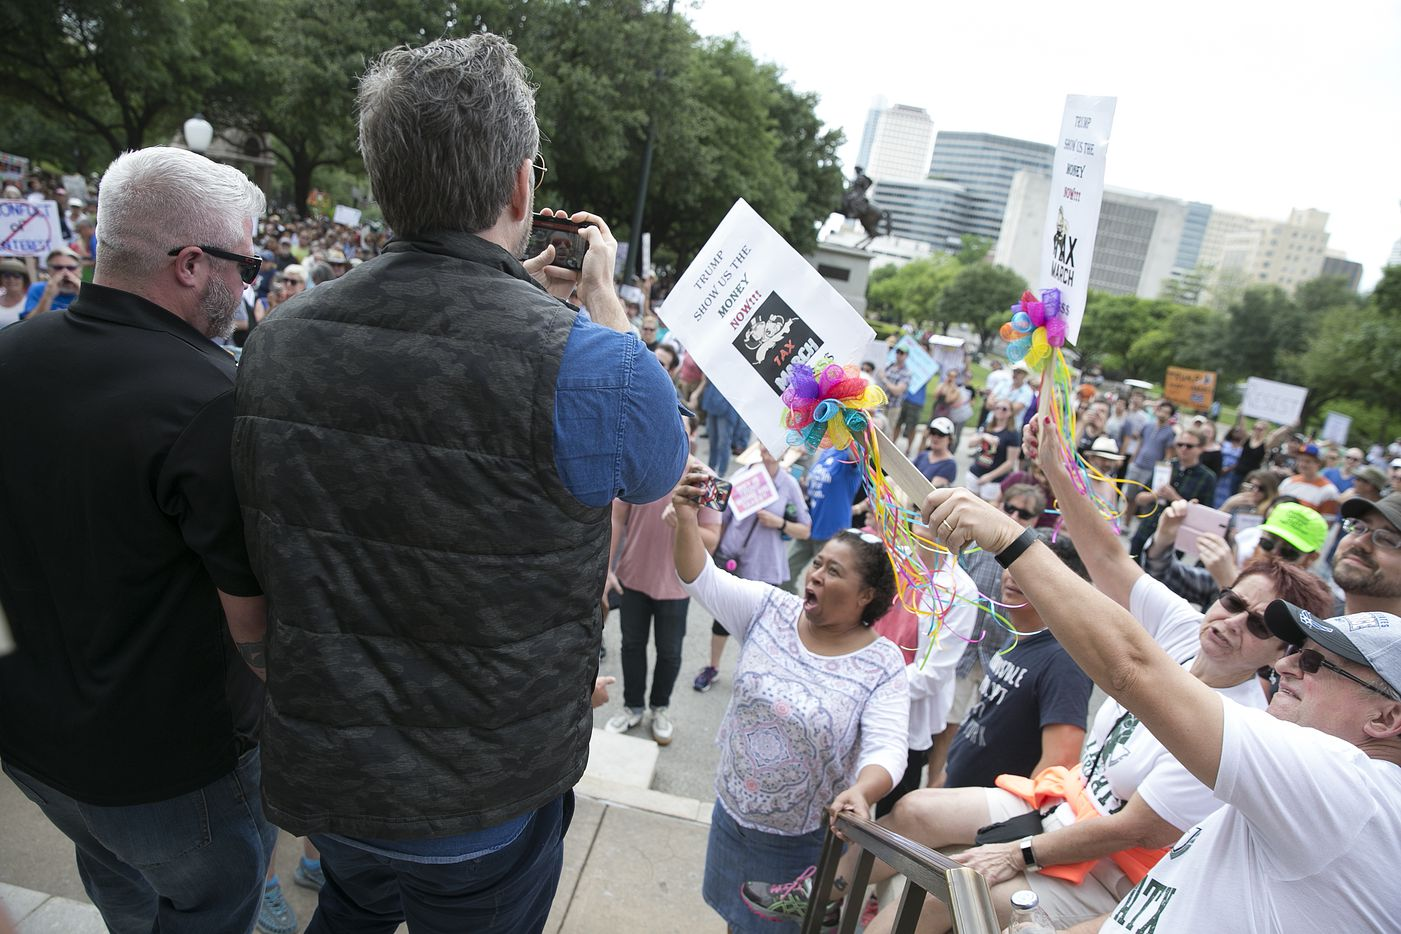 A Trump supporter, center, records video as people yell at him as he is led off stage during an encounter with those in attendance at a protest calling for President Donald Trump to release his tax returns at the Capitol in Austin, Texas, on Saturday, April 15, 2017. The protest is part of a series of marches and protest happening throughout the country. The Trump supporter jumped on stage and started yelling statements about former President Clinton.